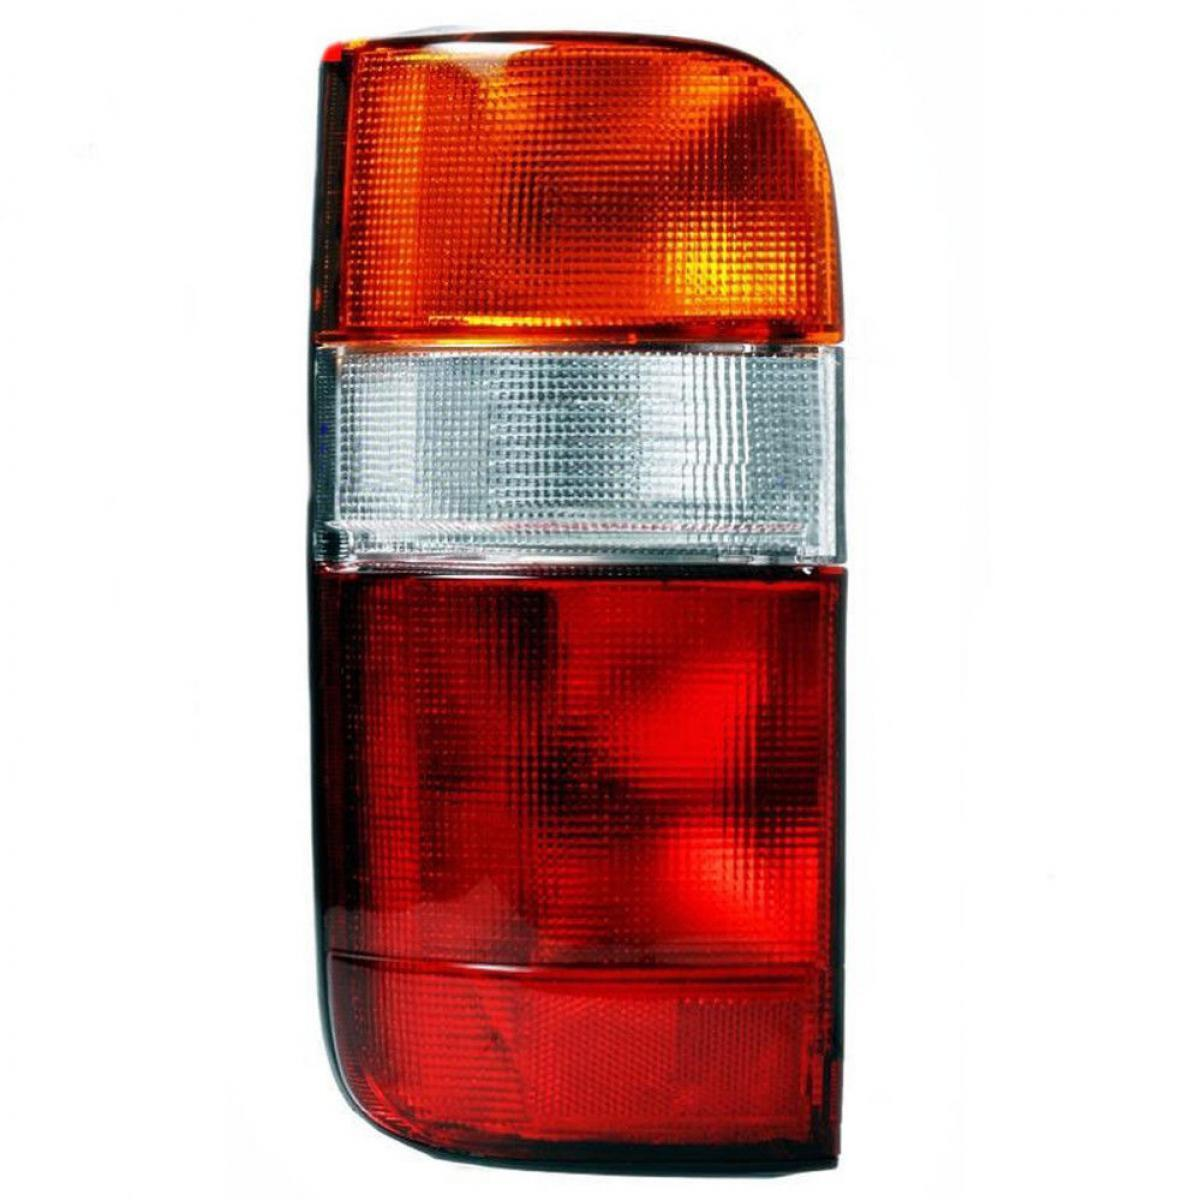 K1AutoParts Crystal Donut Rear Taillight Tail Light Lamp For Toyota Hiace LH112 1989-2004